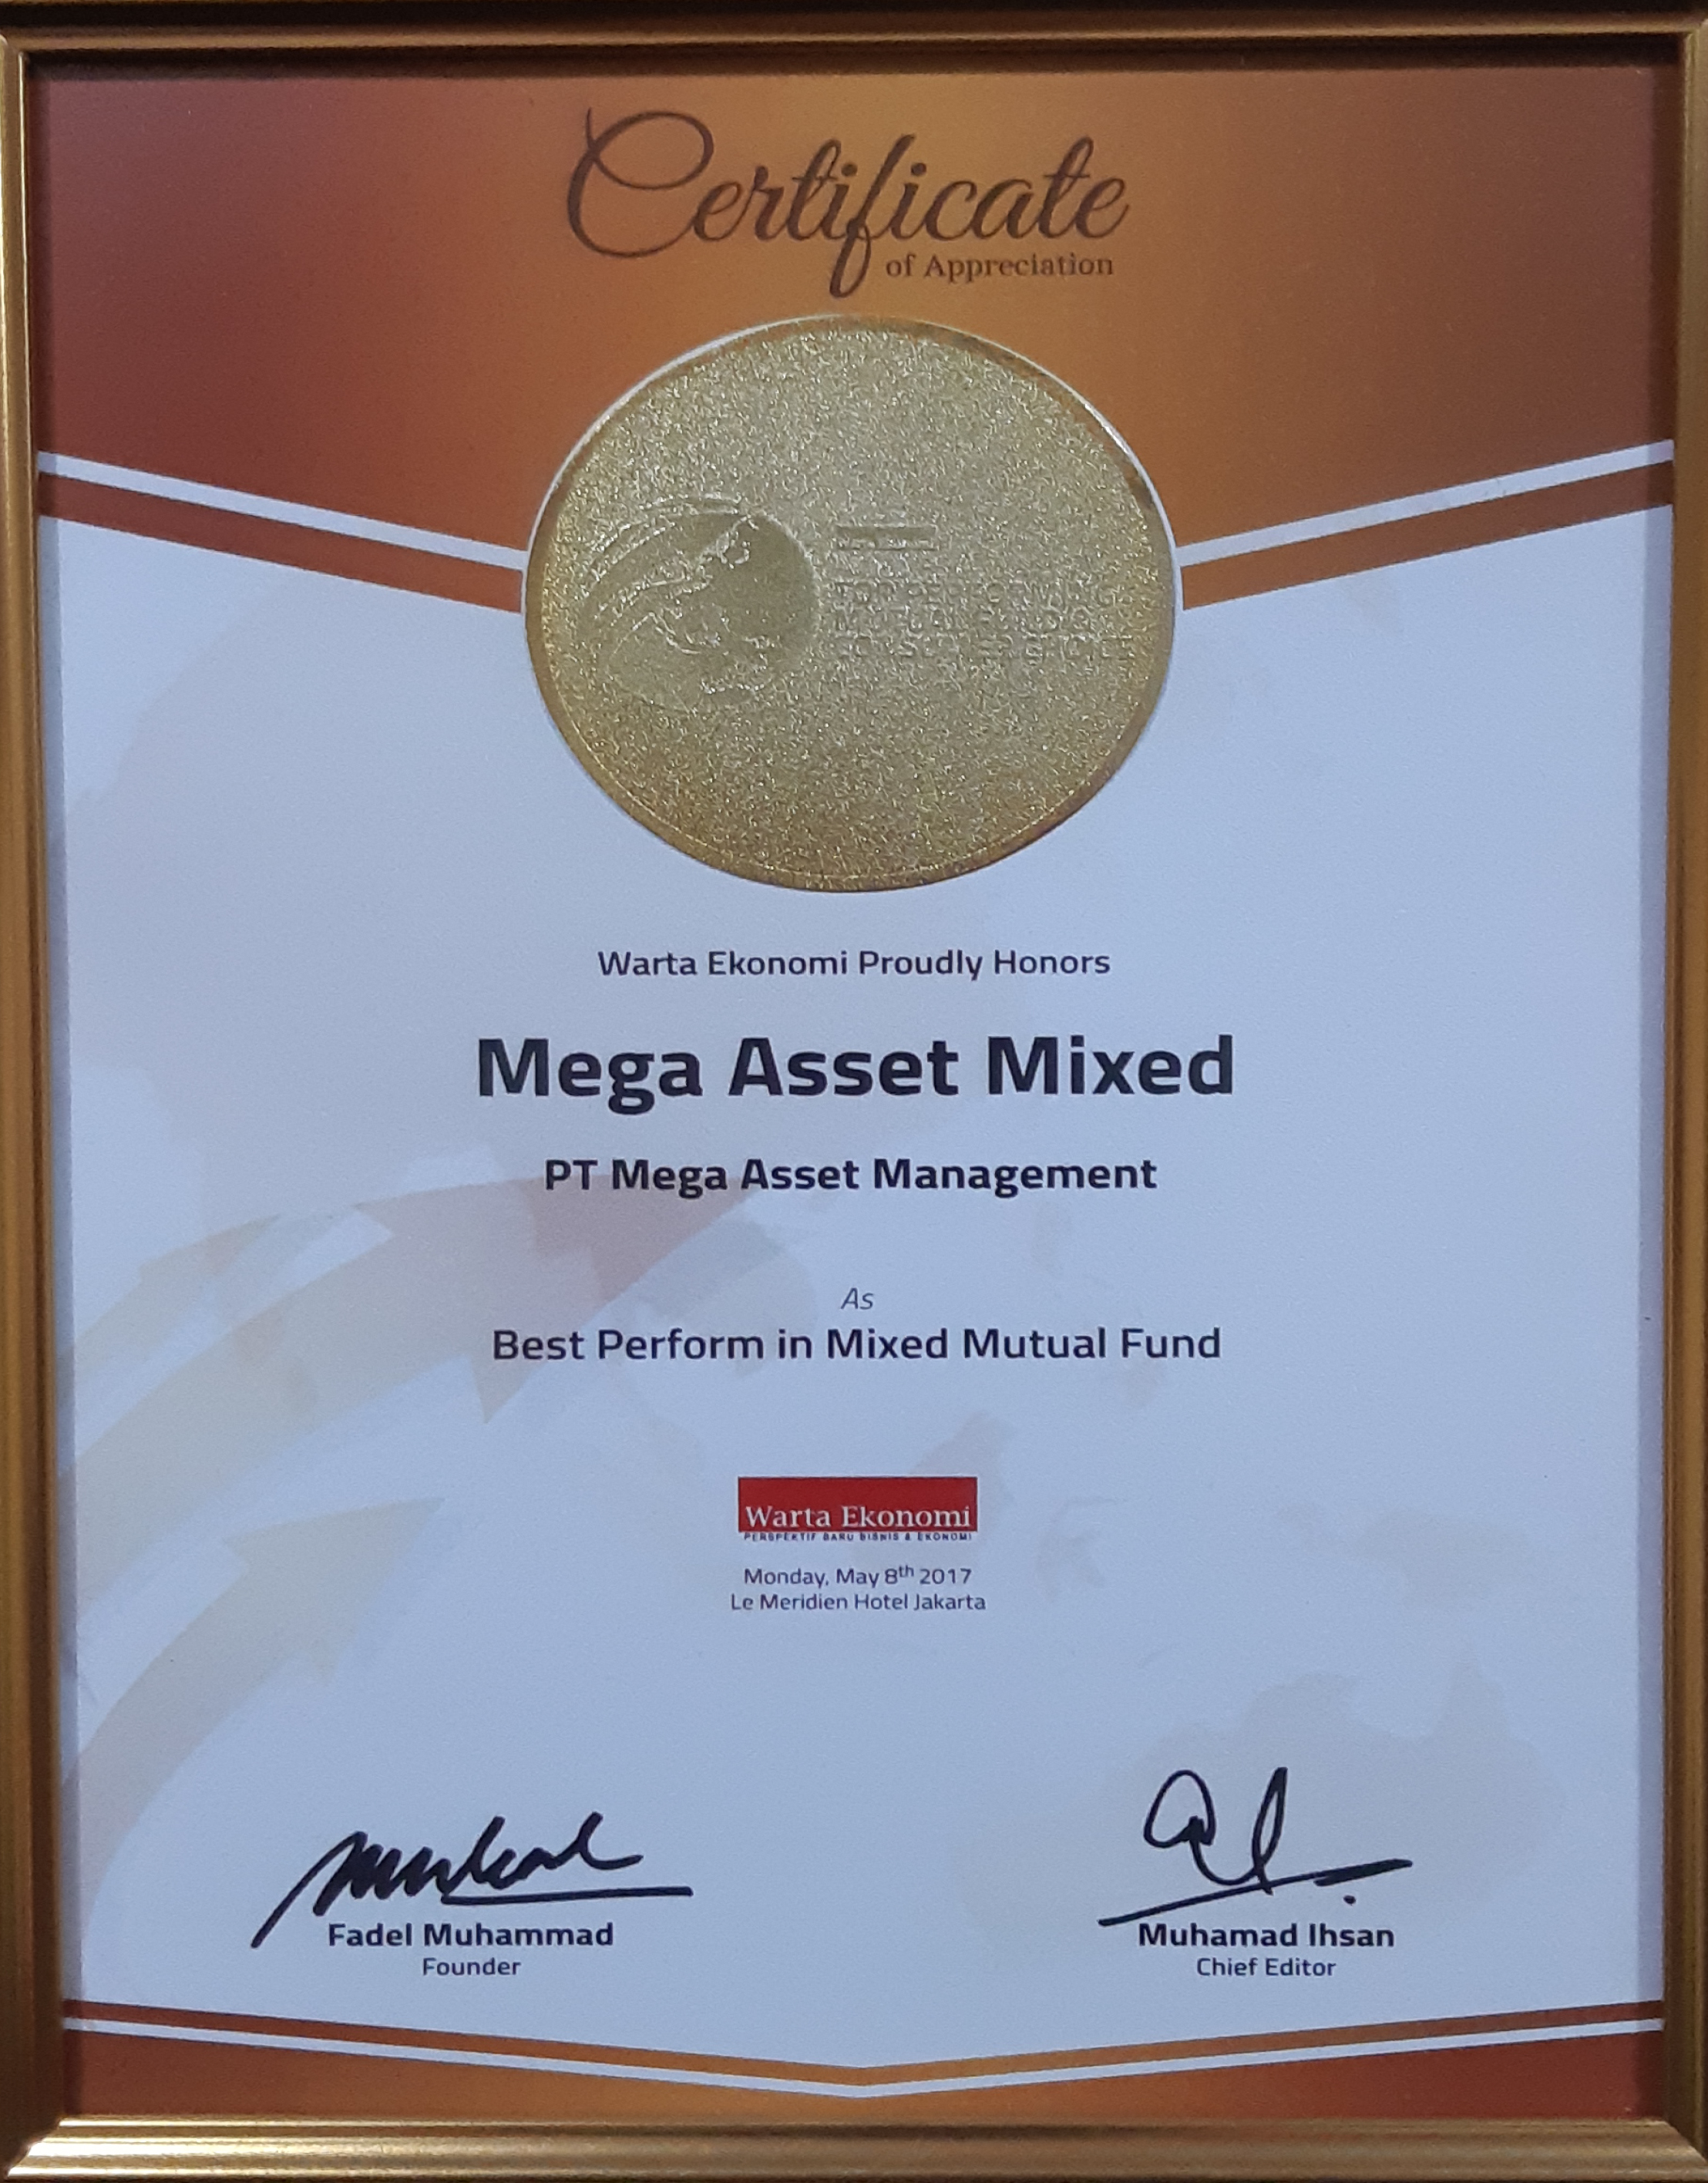 Best Performance in Mixed Mutual Fund